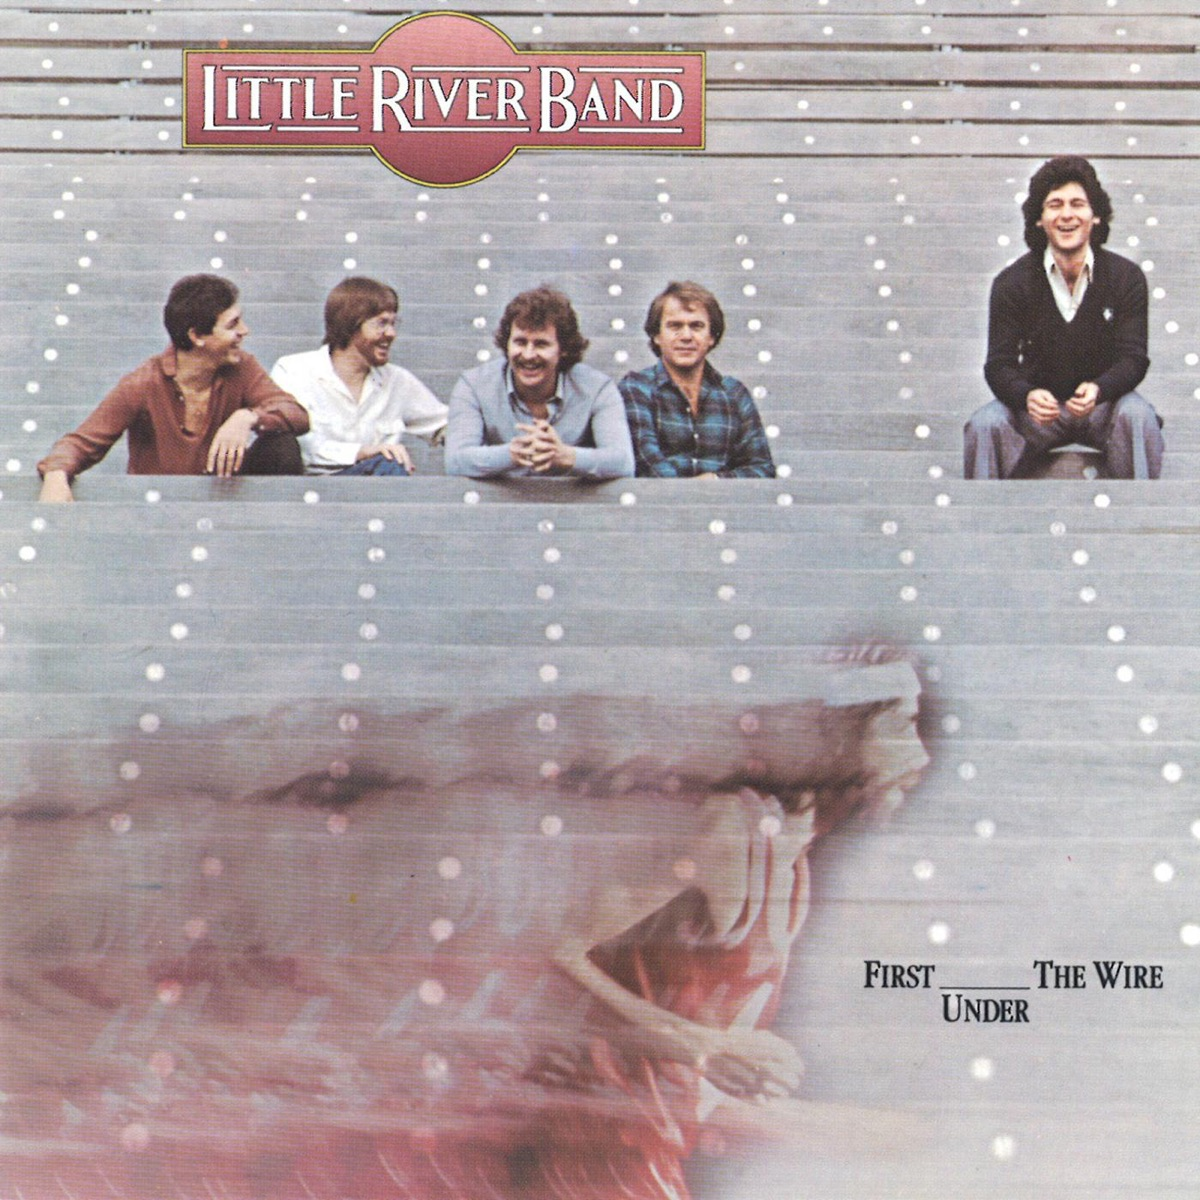 First Under the Wire Album Cover by Little River Band